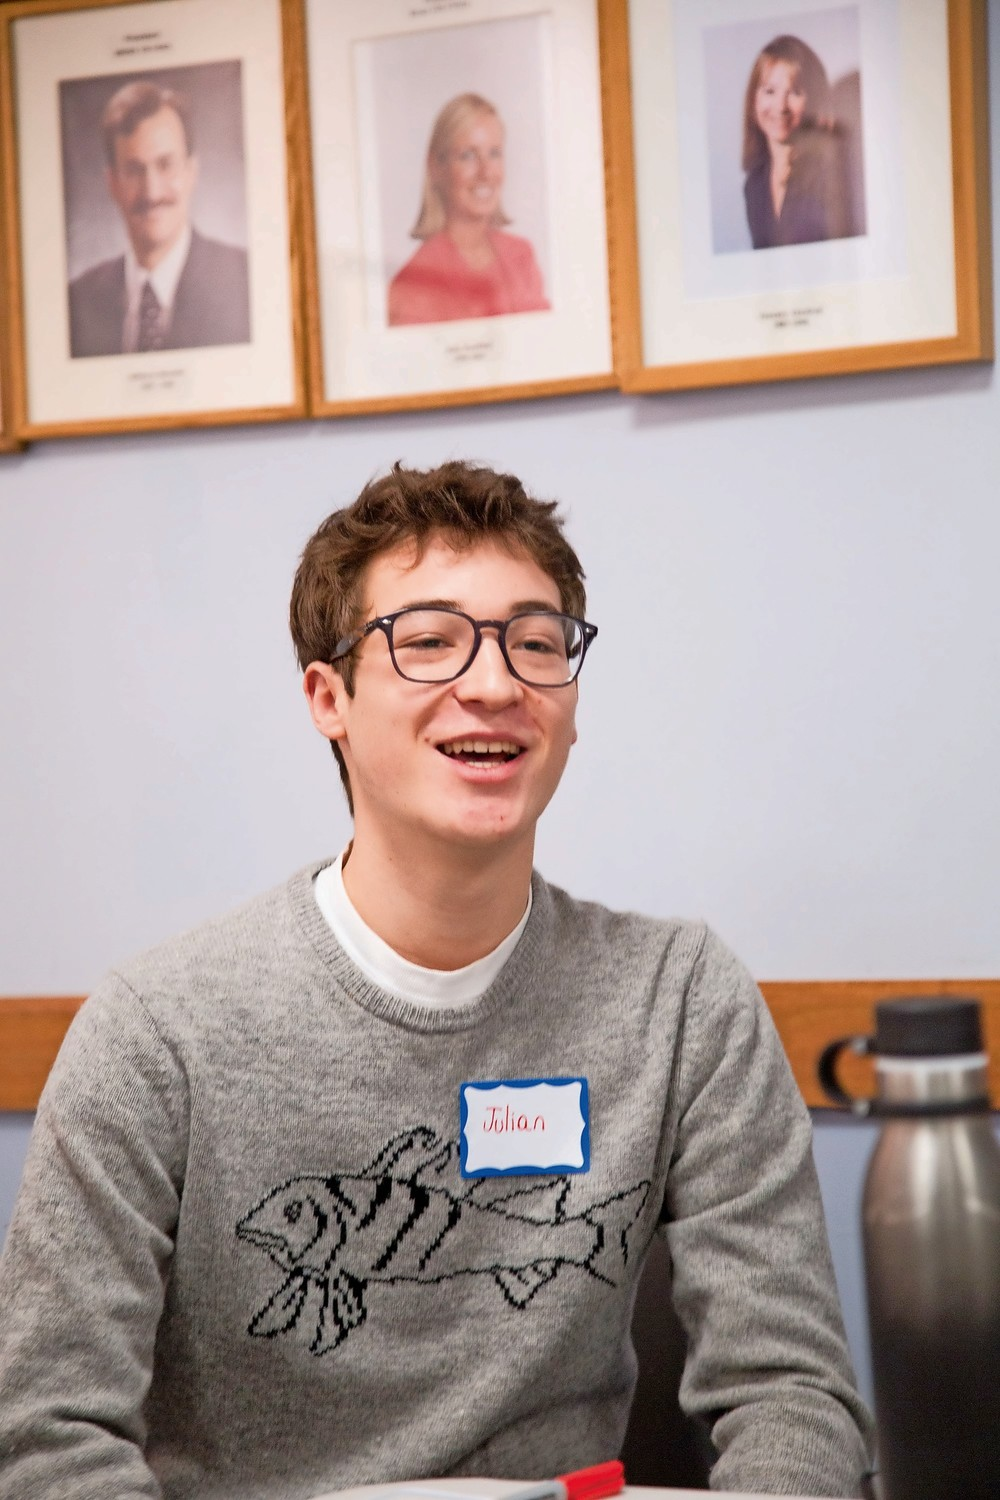 Julian Reich, a Jewish student at the High School of American Studies, speaks at an interfaith event for Jewish and Muslim youth at the Riverdale Y.